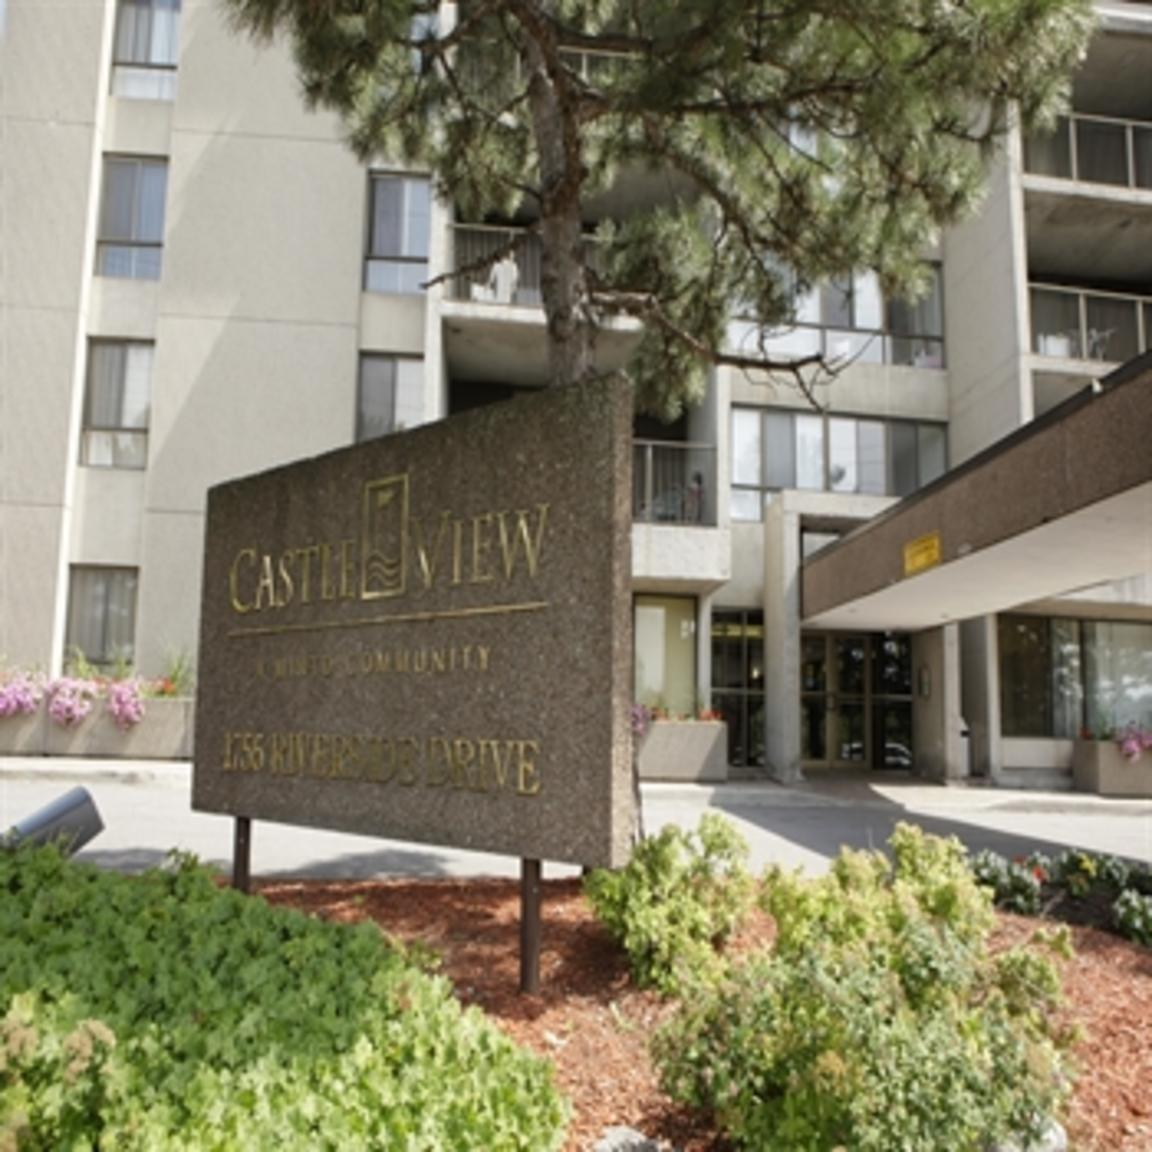 Beacon Hill Apartments Charlotte Nc: Castleview Apartments, Ottawa ON